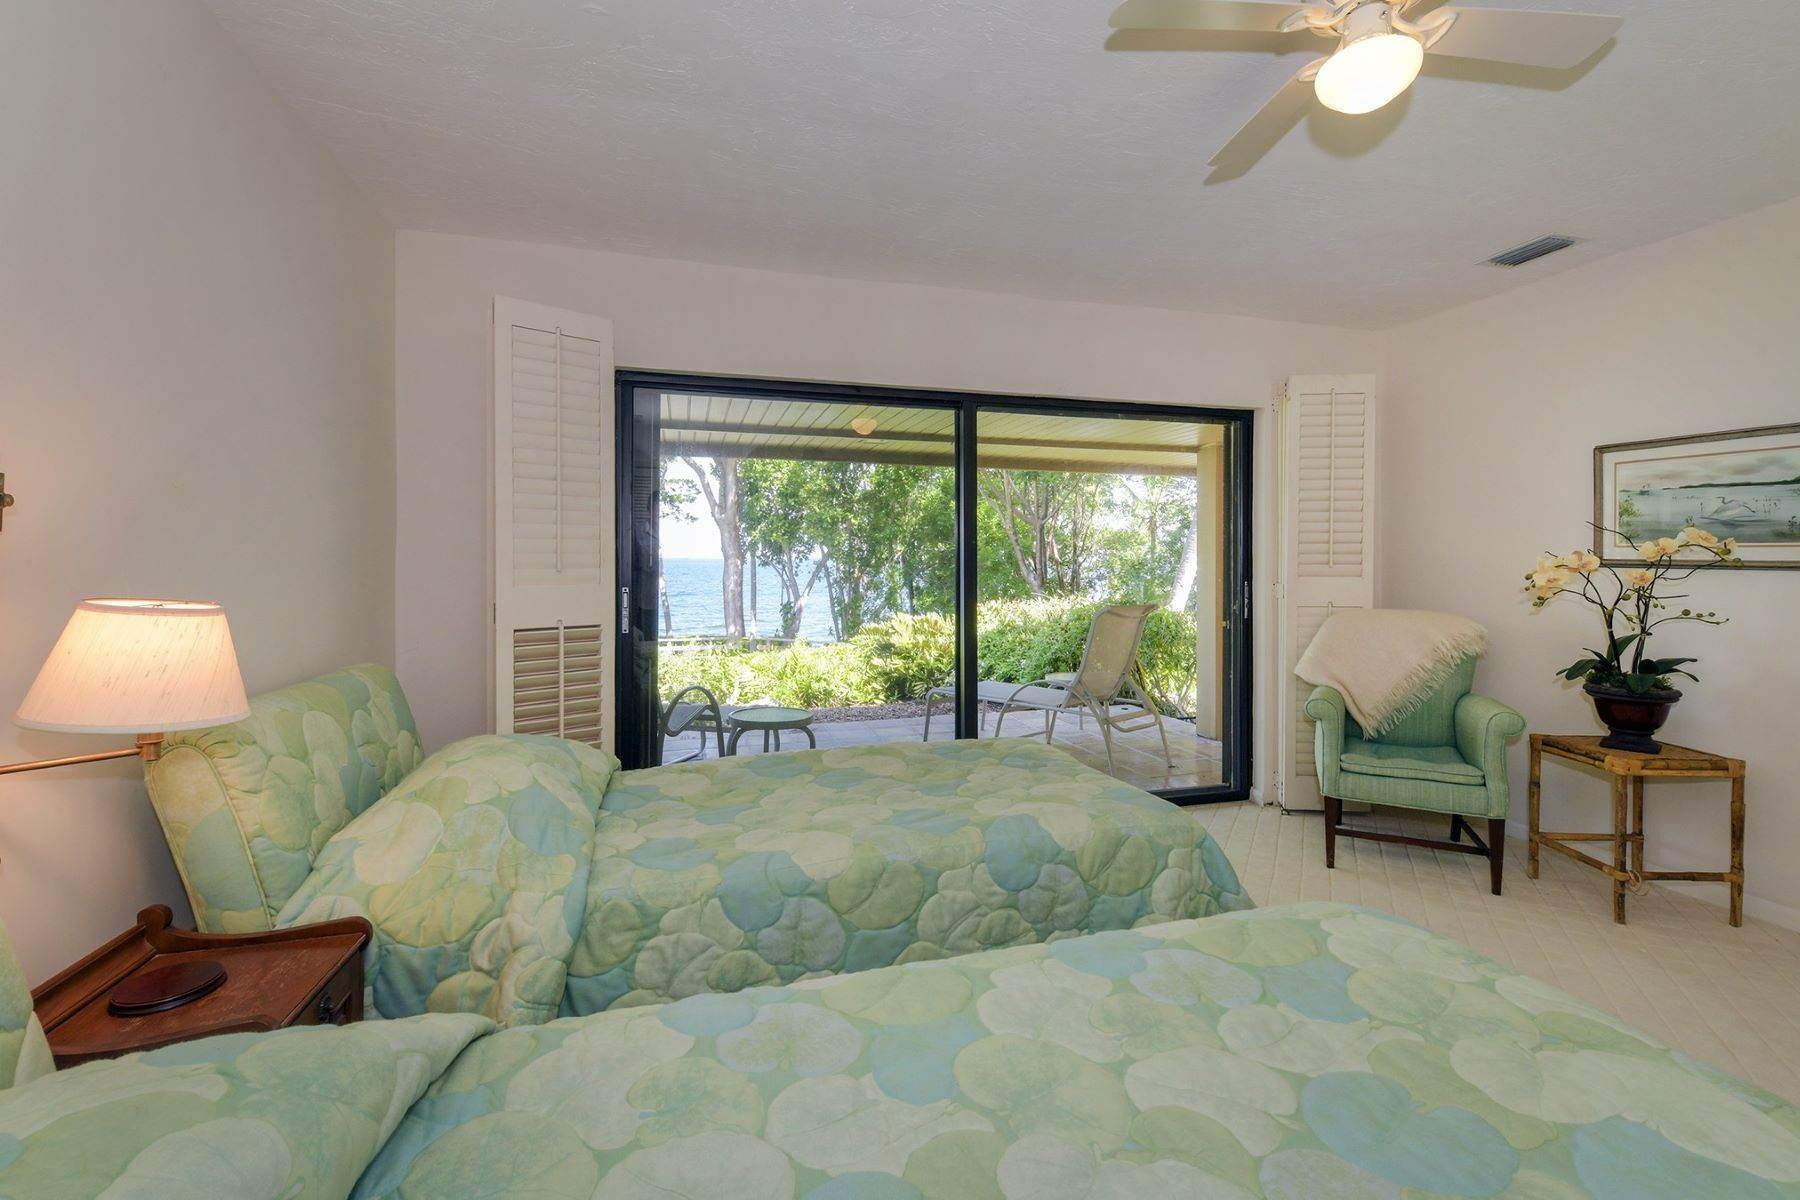 26. Property for Sale at 10 Cannon Point, Key Largo, FL Key Largo, Florida 33037 United States